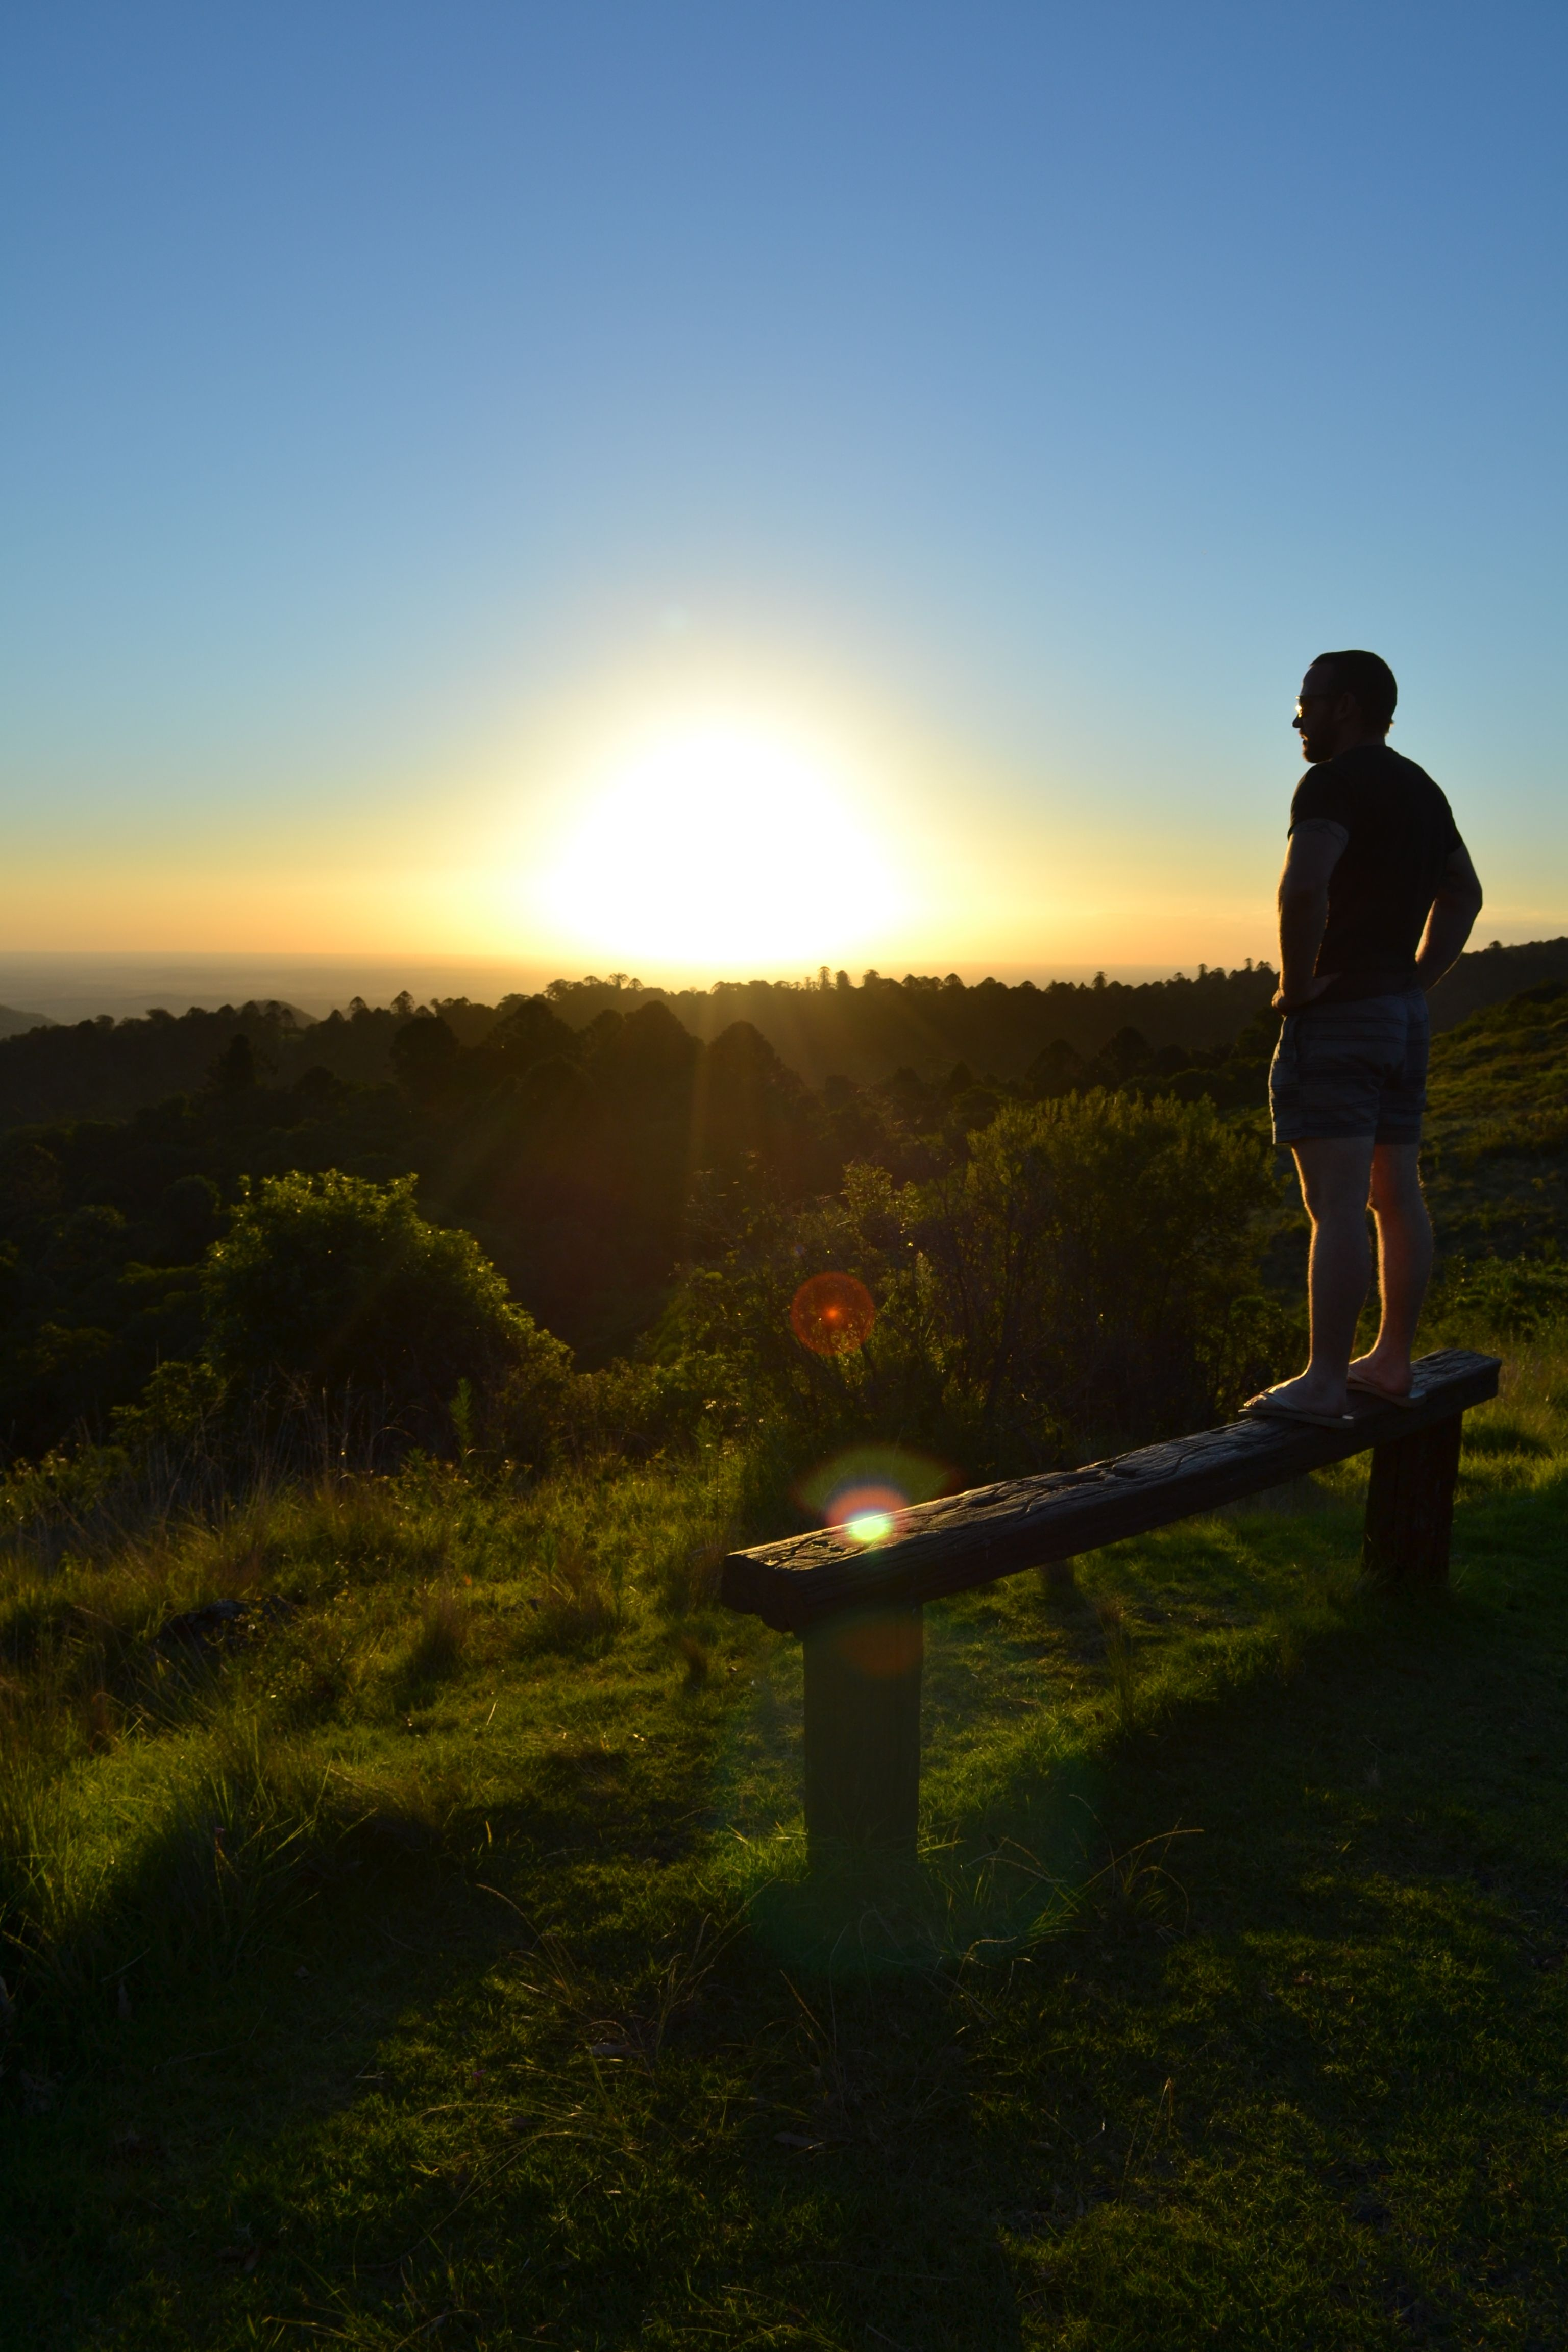 L1M1AP3  rule of thirds in the mountains at sunset Nikon D3100 f/8 1 & L1M1AP3 : rule of thirds in the mountains at sunset Nikon D3100 f/8 ...